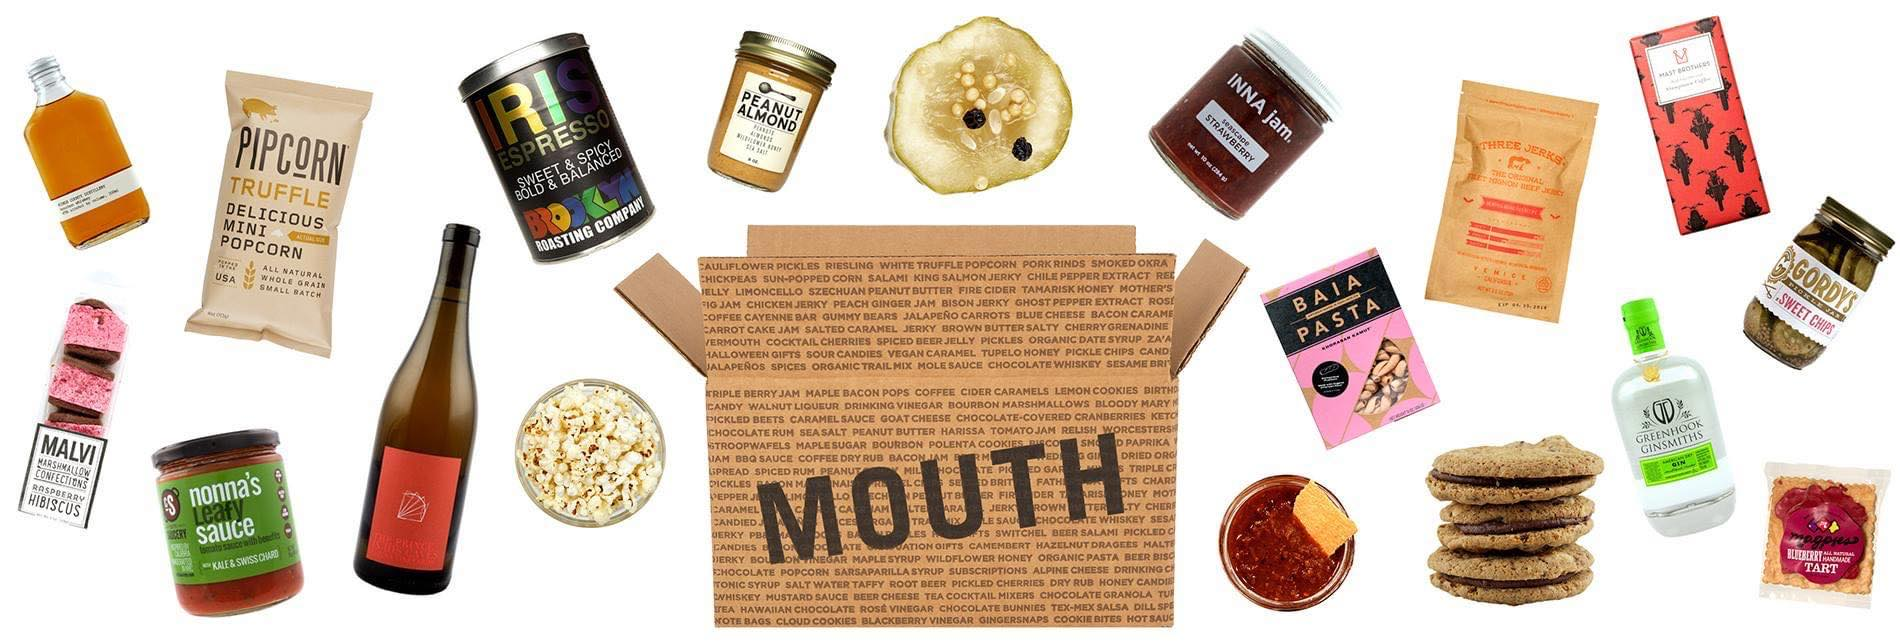 Mouth (Online food delivery company)